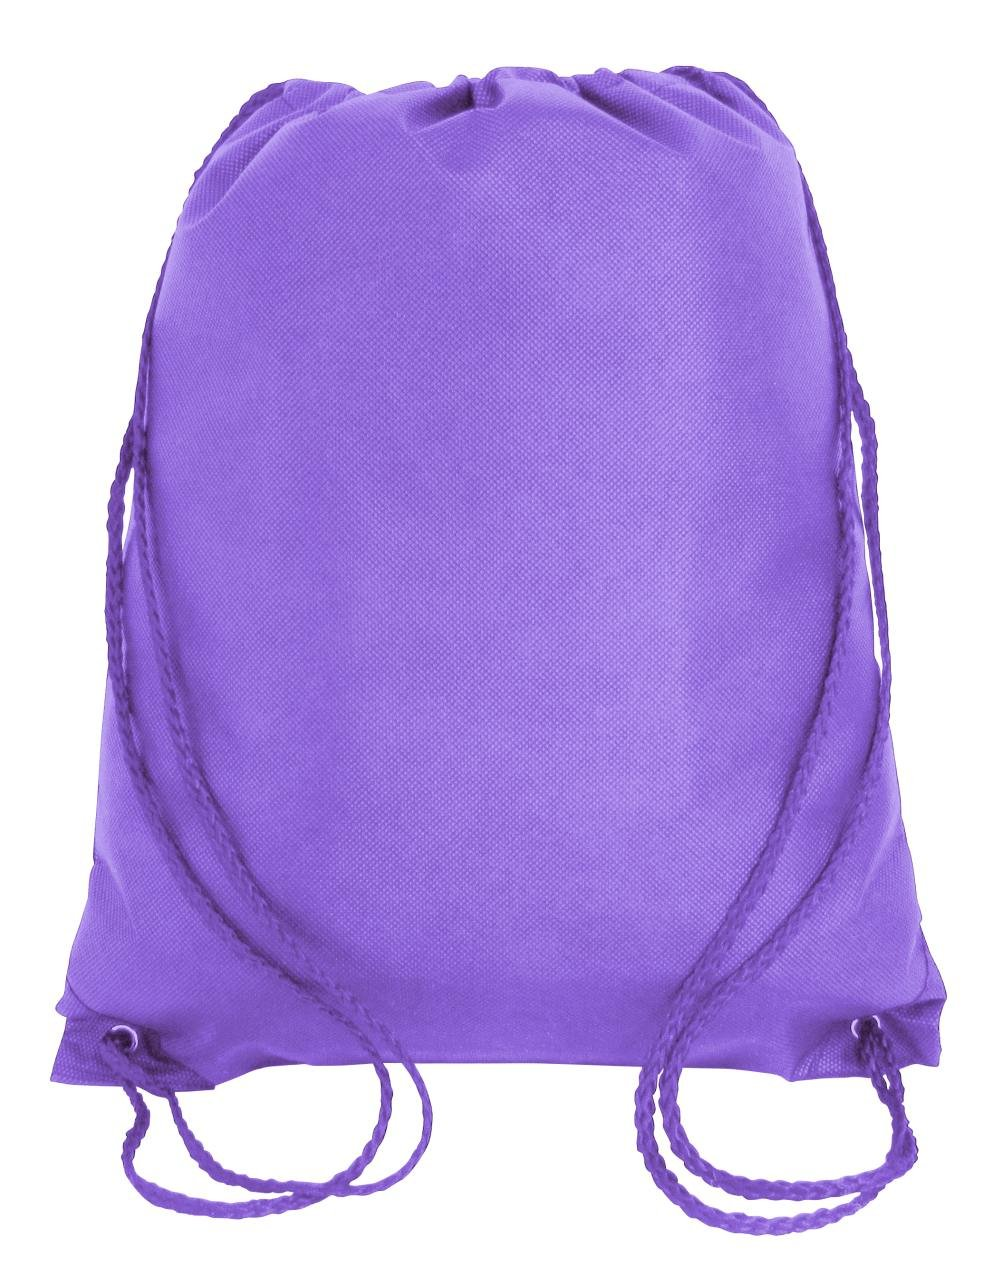 Drawstring Tote Backpack Non-Woven Cinch Sack Bag Swim Camp Party Favor 25 Pack (Hyacinth)